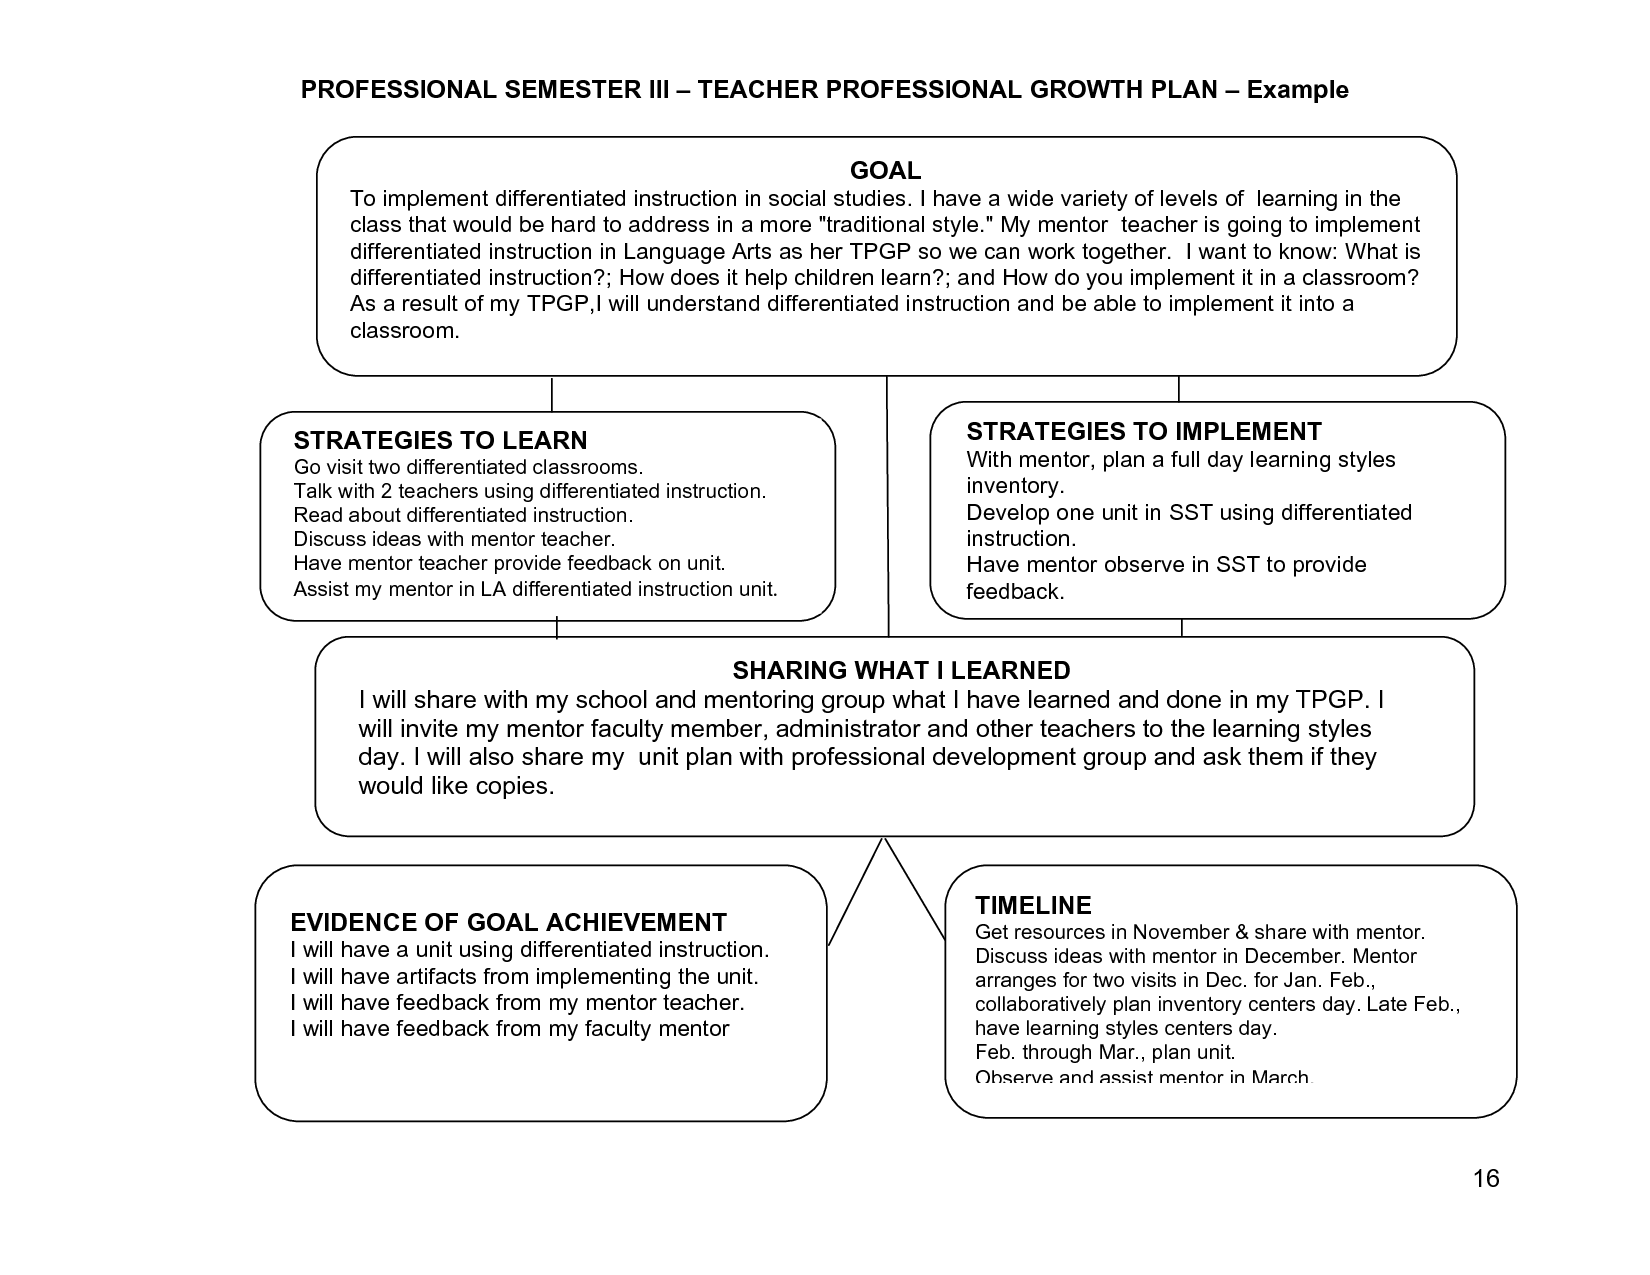 learning plans or goals for teachers semester iii teacher learning plans or goals for teachers semester iii teacher professional growth plan